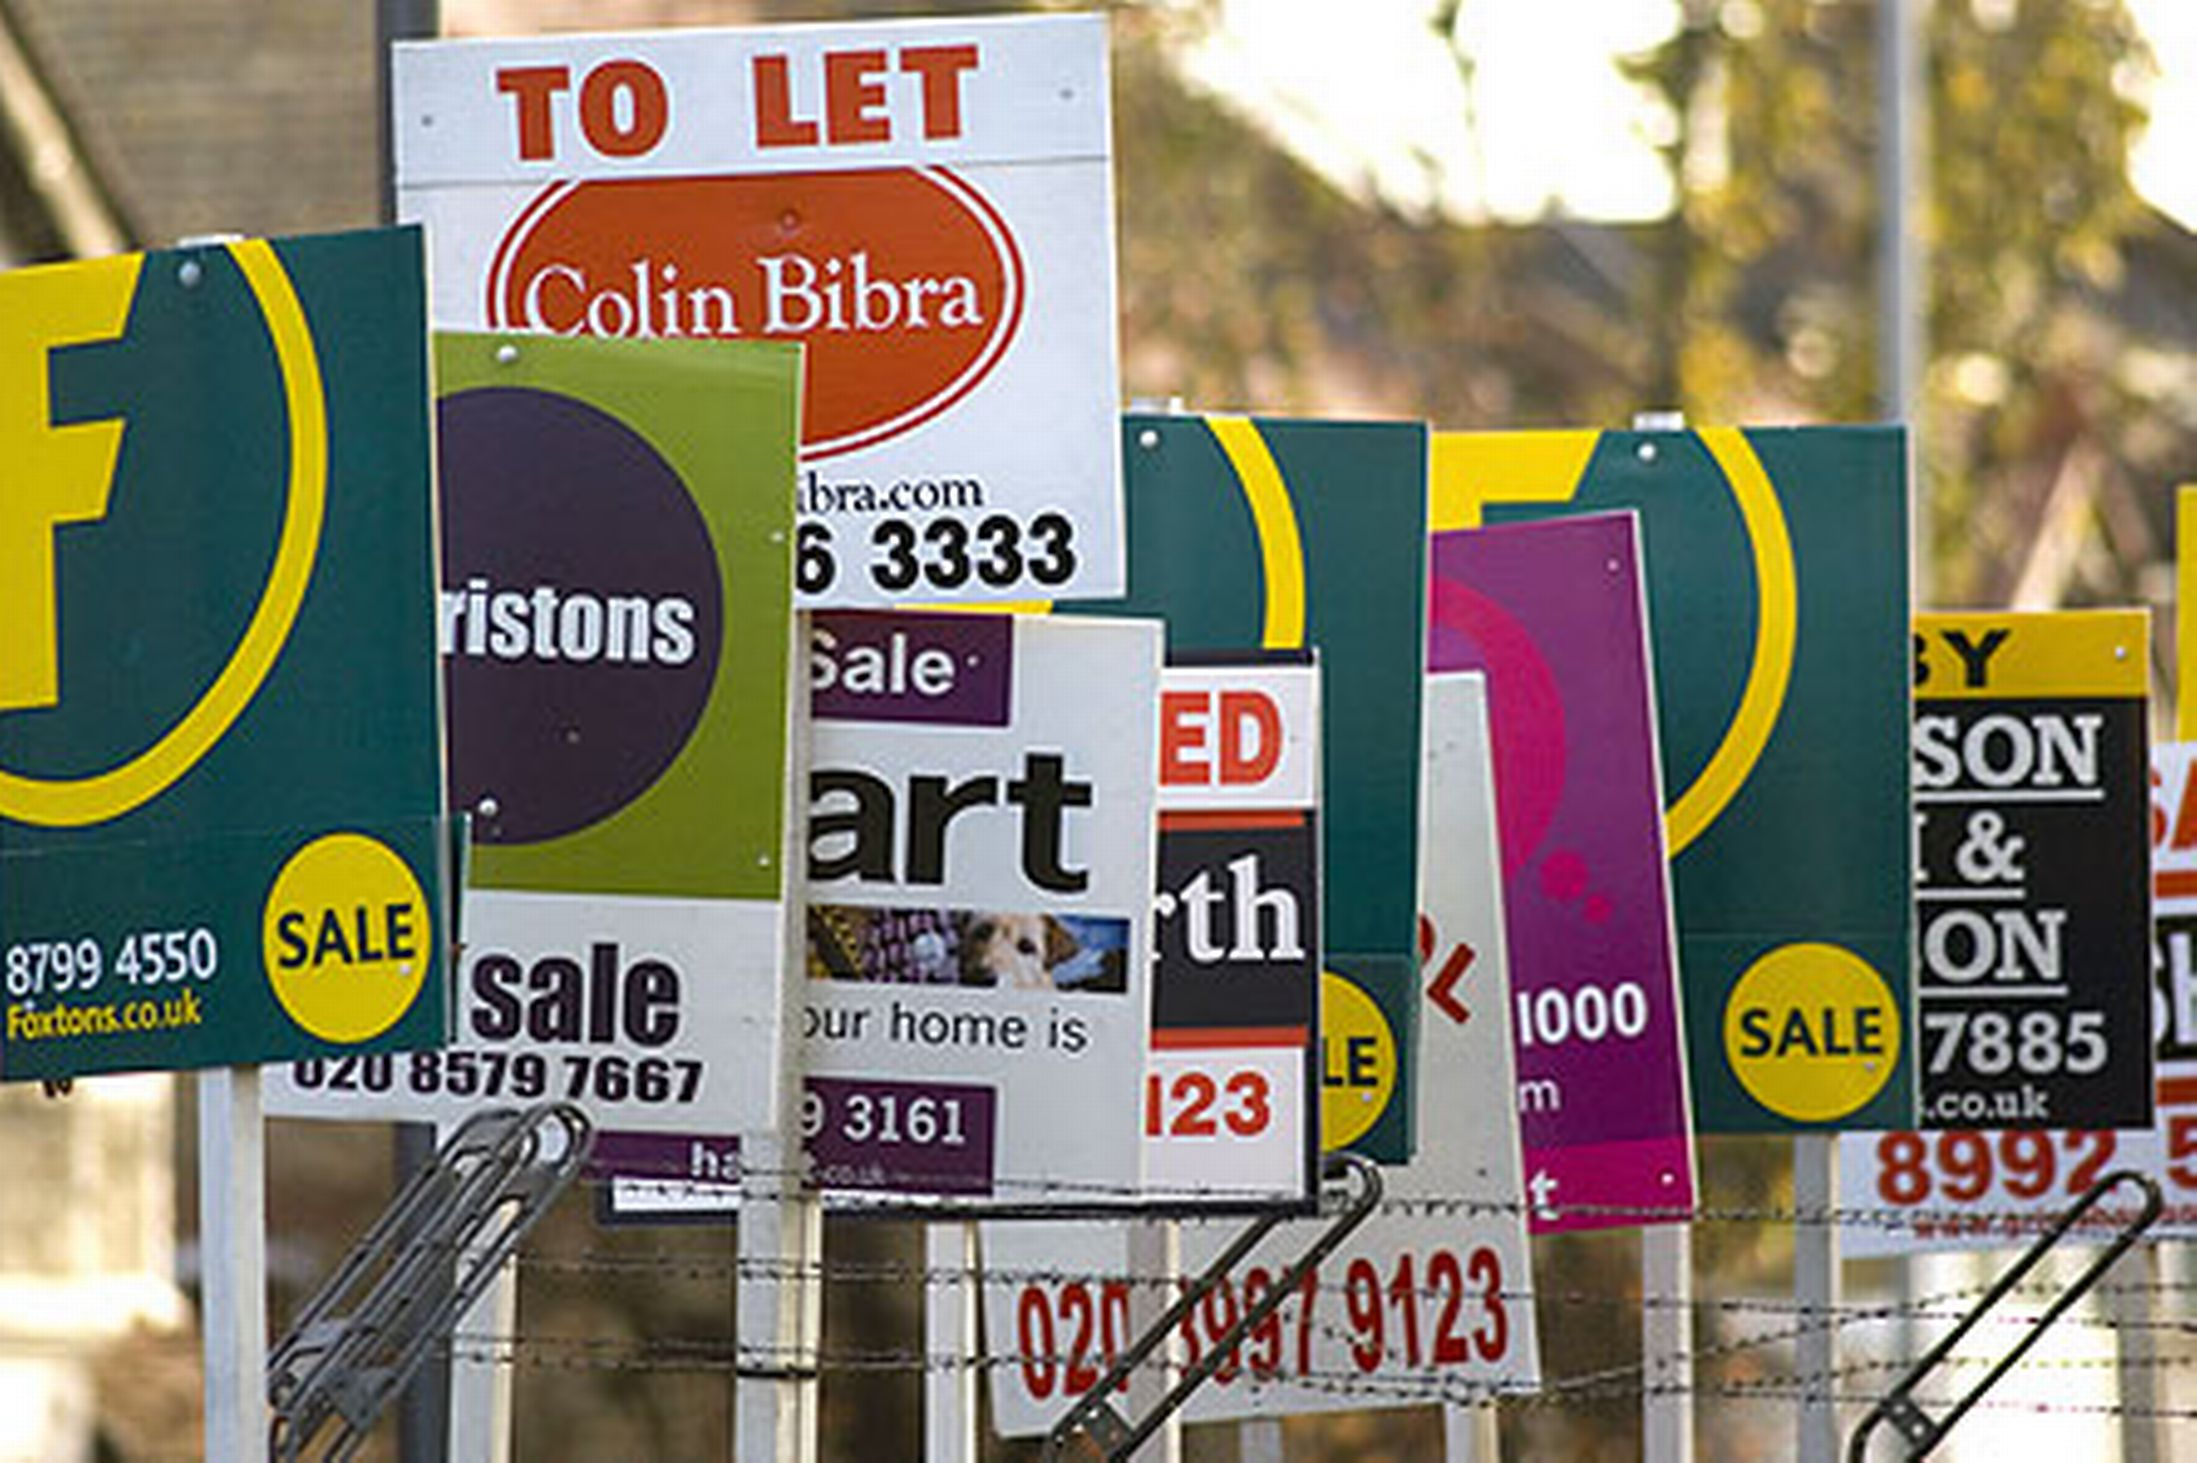 estate-agents-pic-rex-1240863001